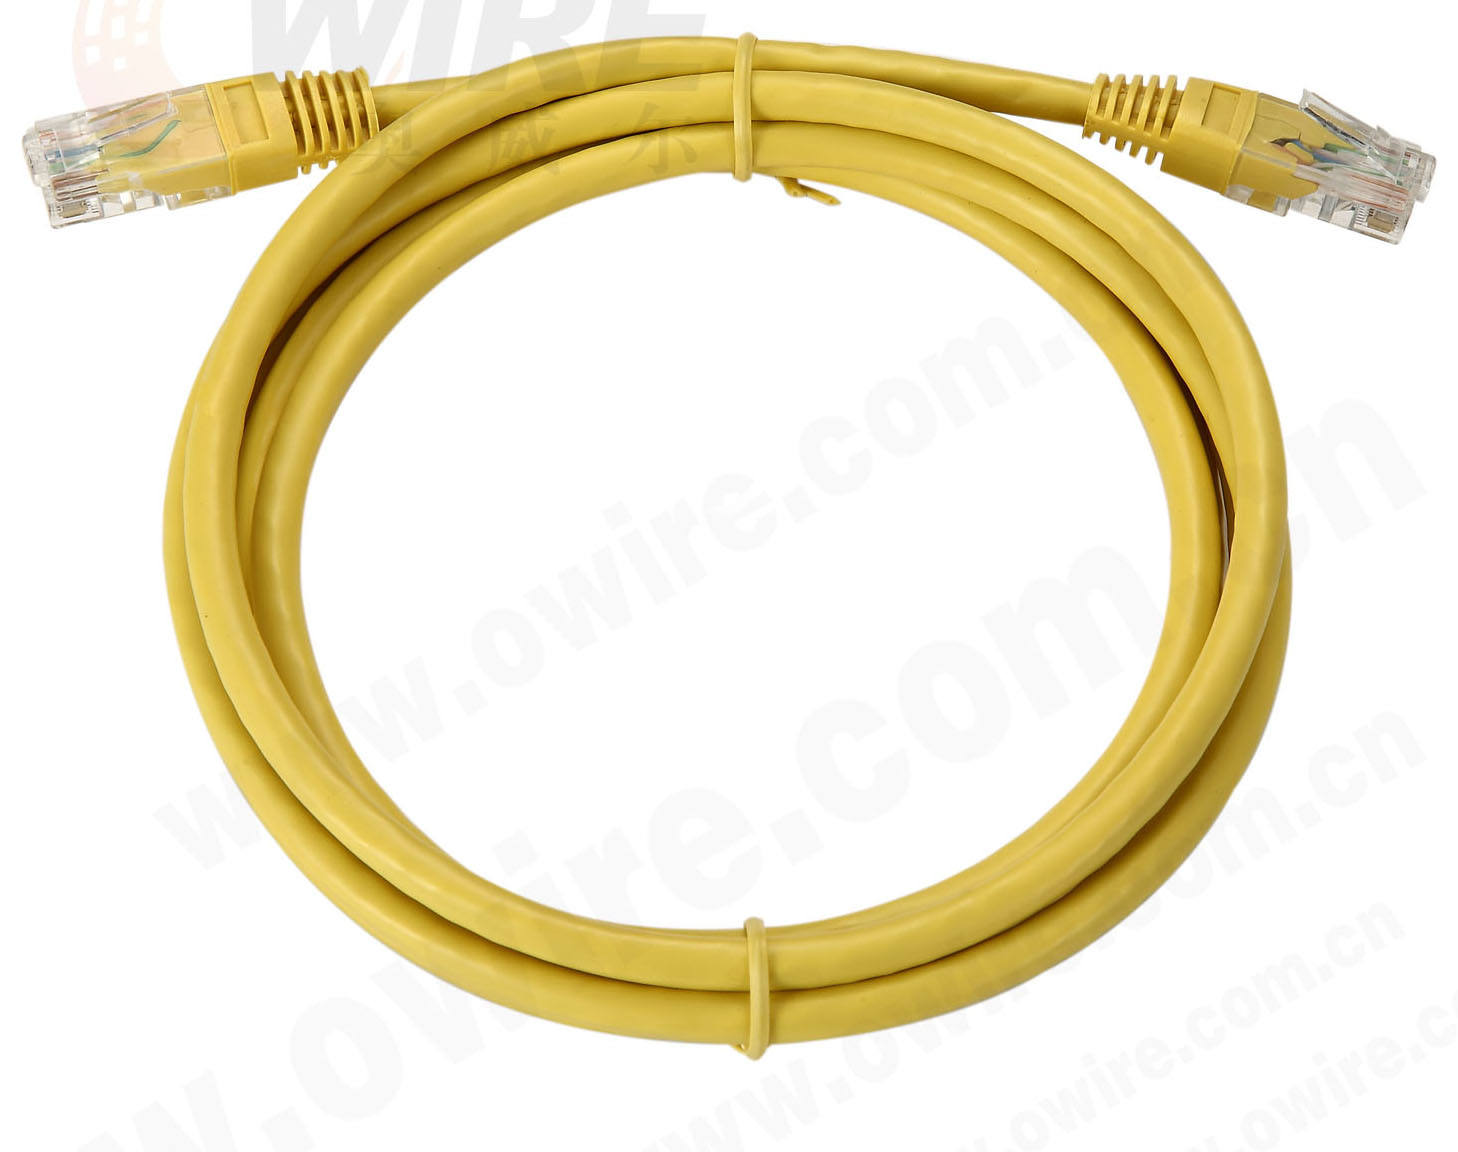 Hot koop cat6 cat6a cat5 cat5a netwerk kabel 3 m utp cat6 patch cord